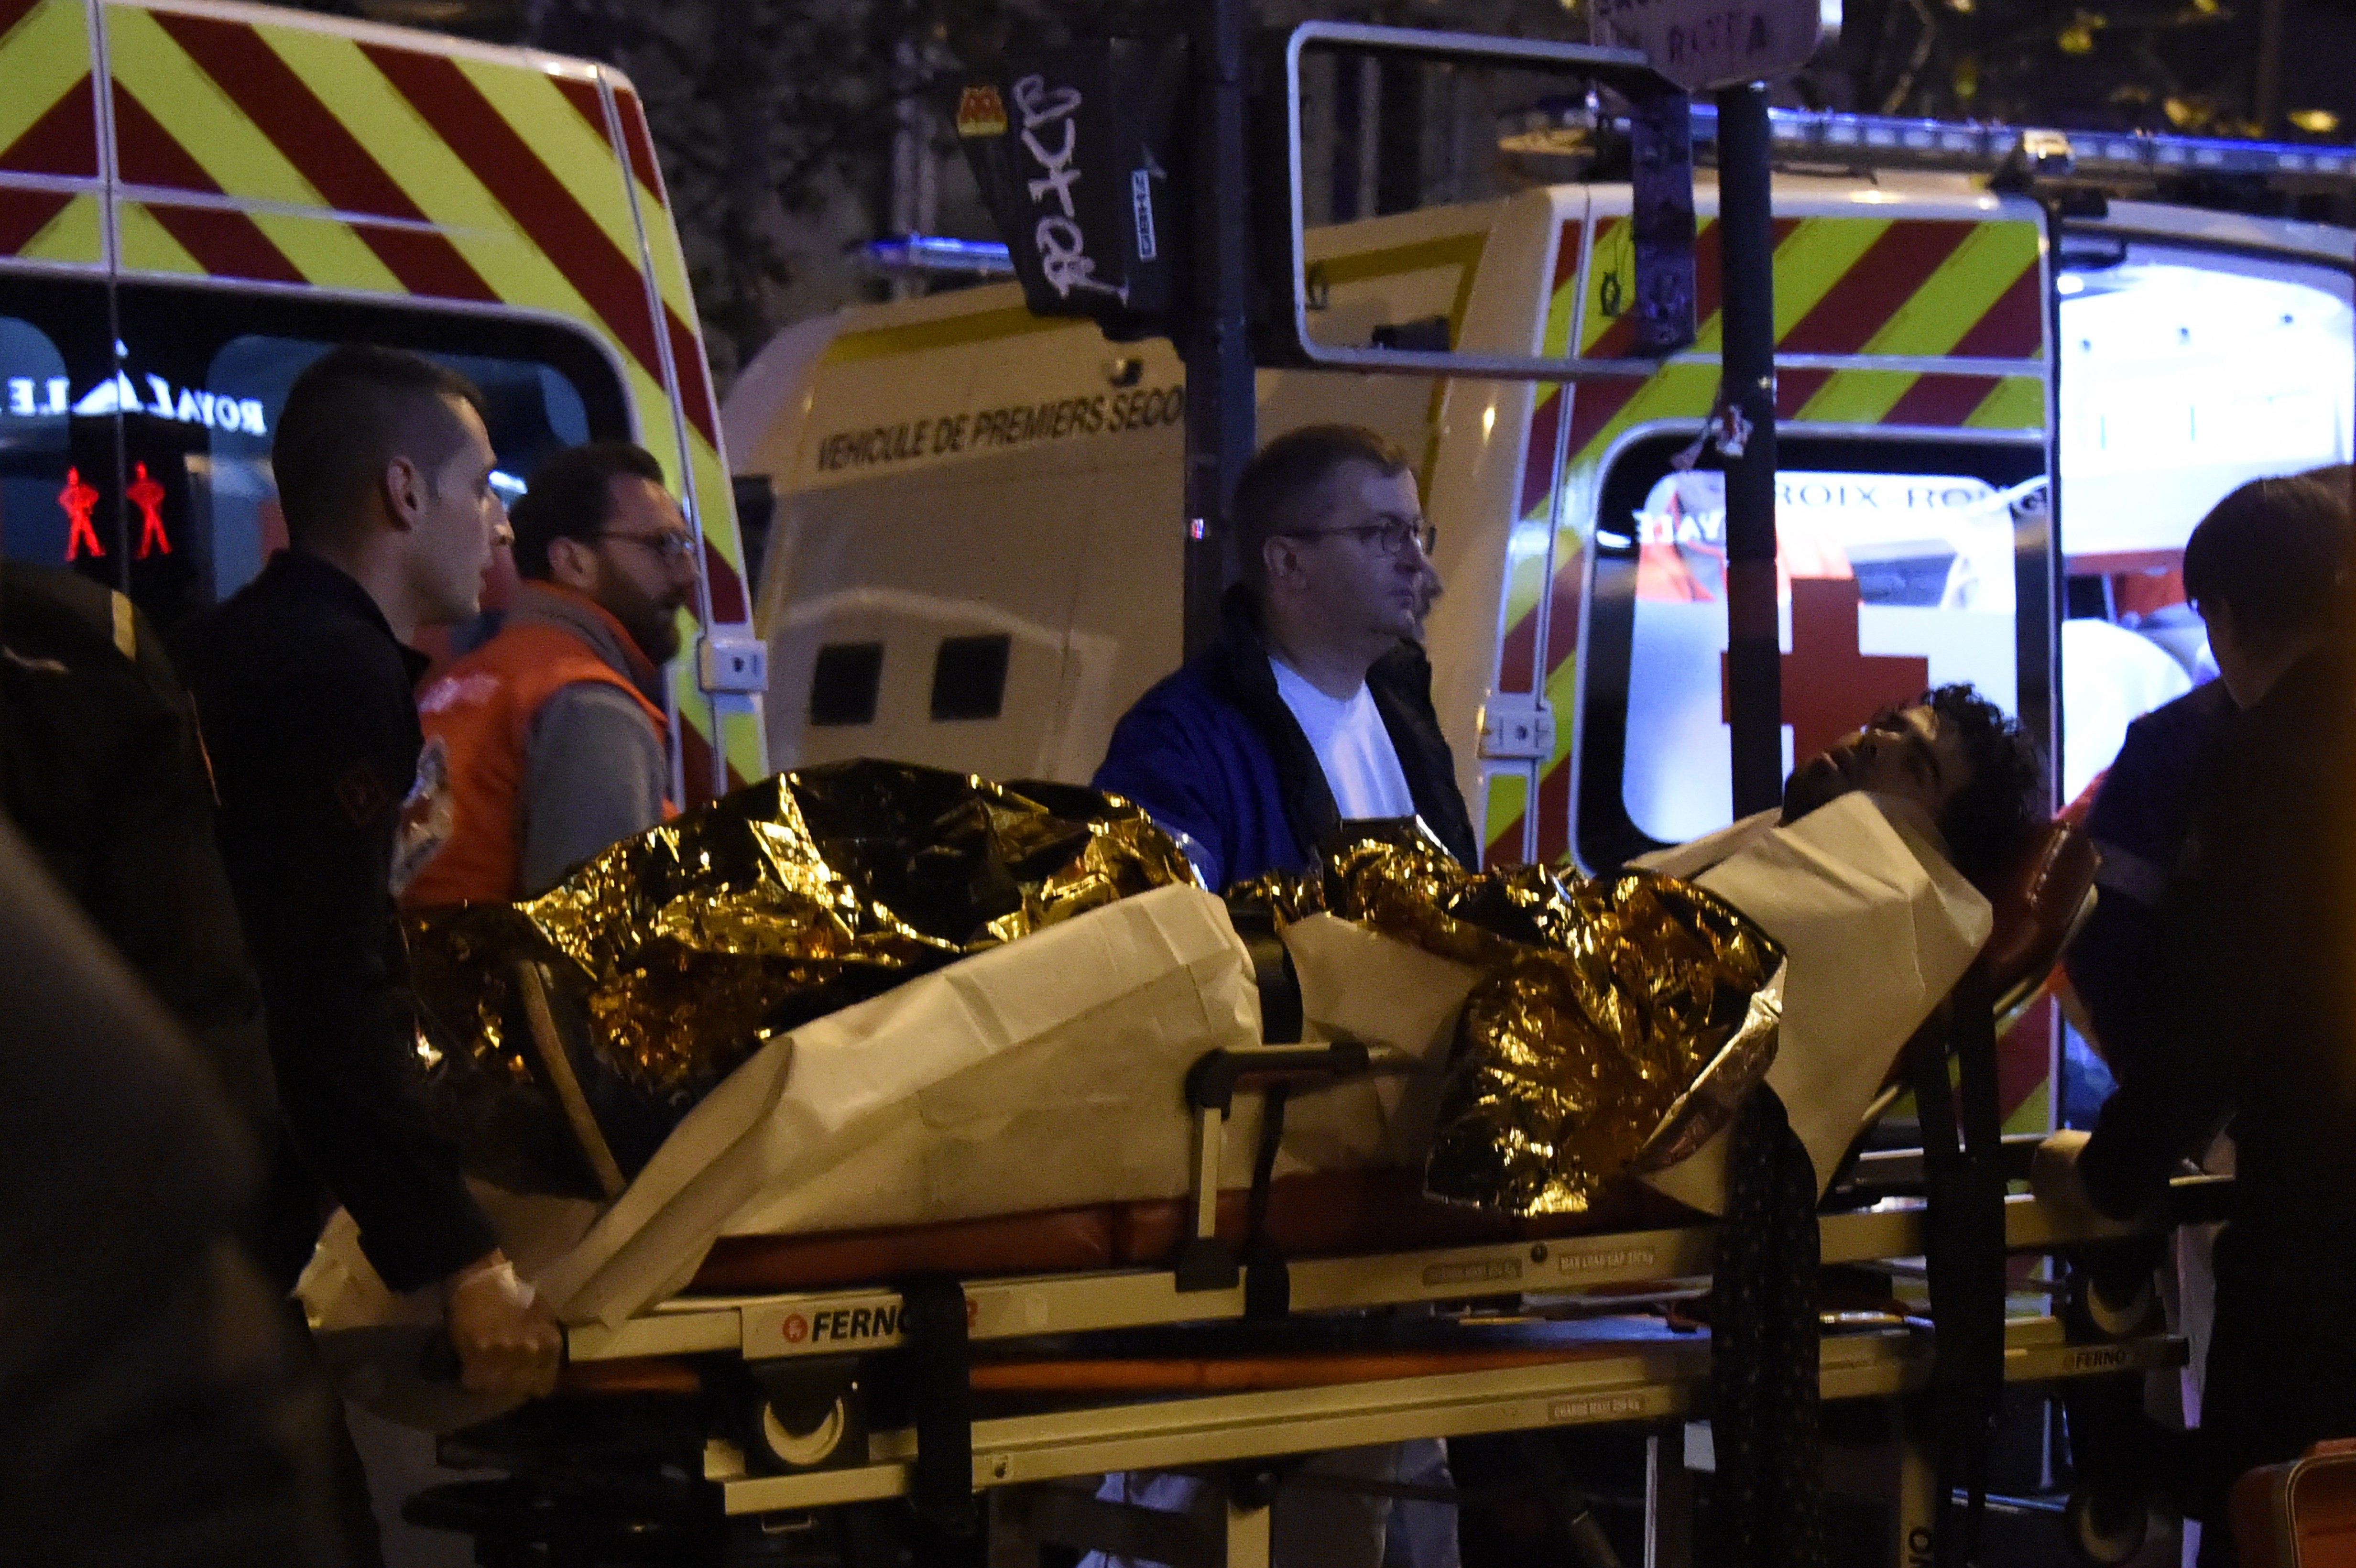 An injured man is evacuated on a stretcher near the Bataclan concert hall. (Getty)